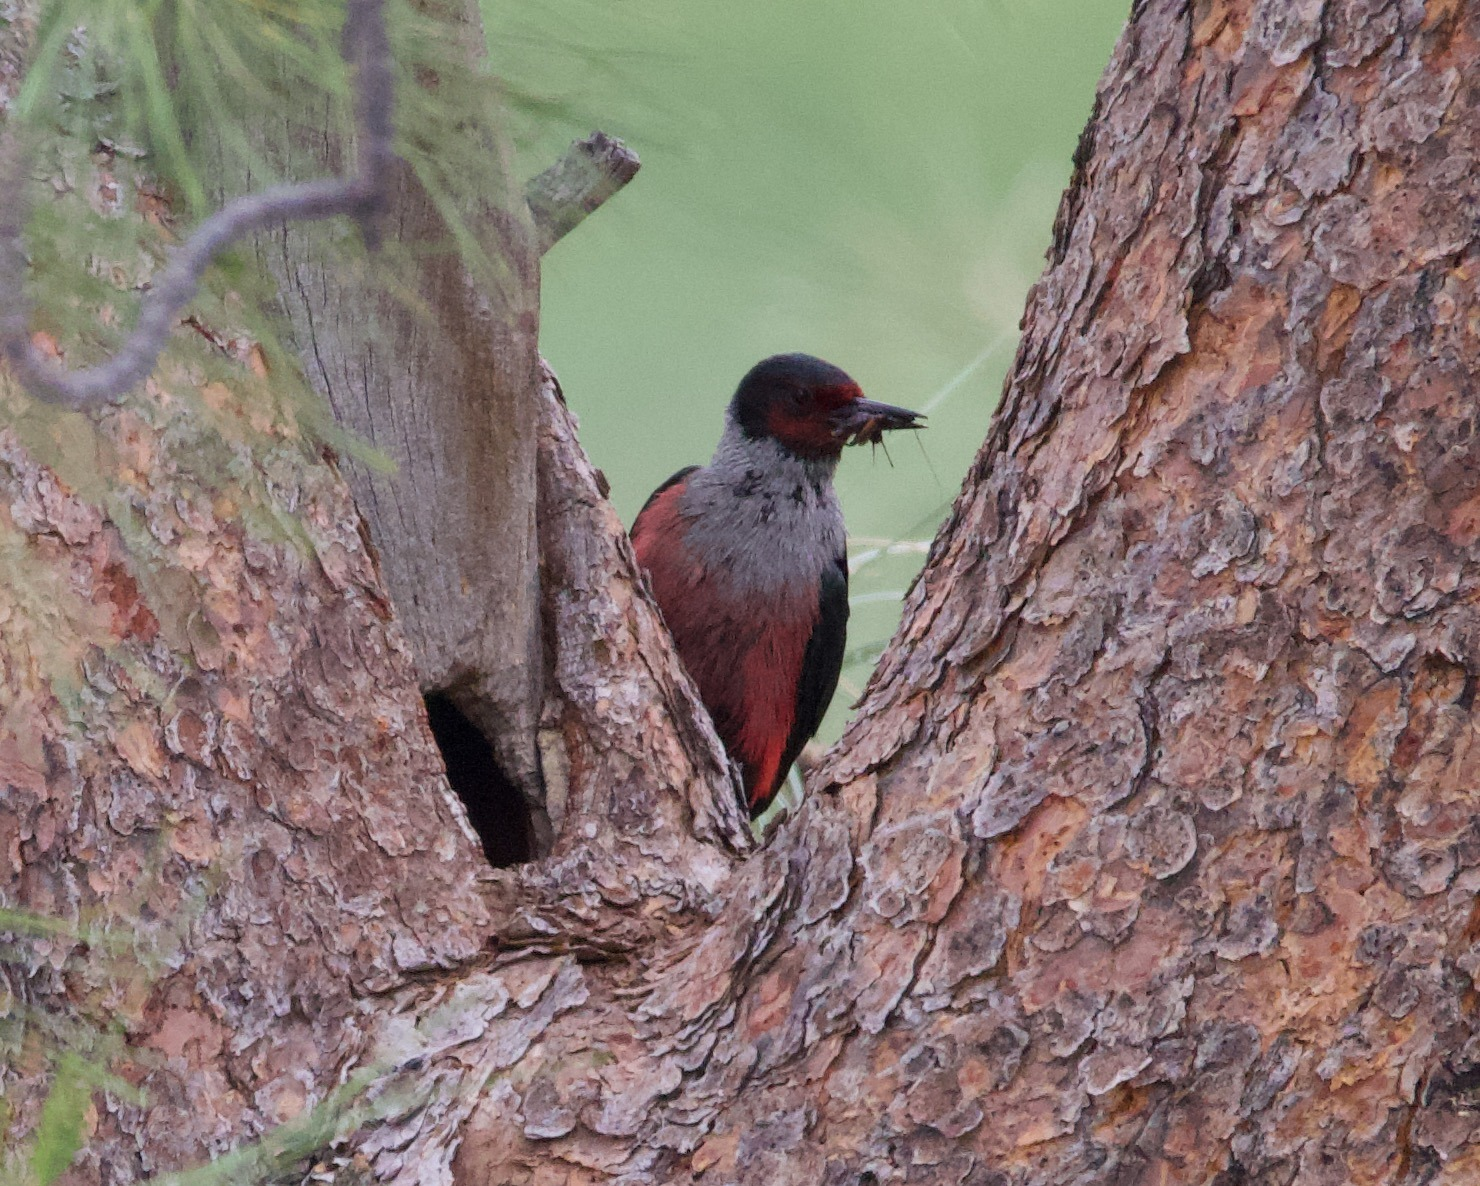 Counting birds at risk in the southern Okanagan